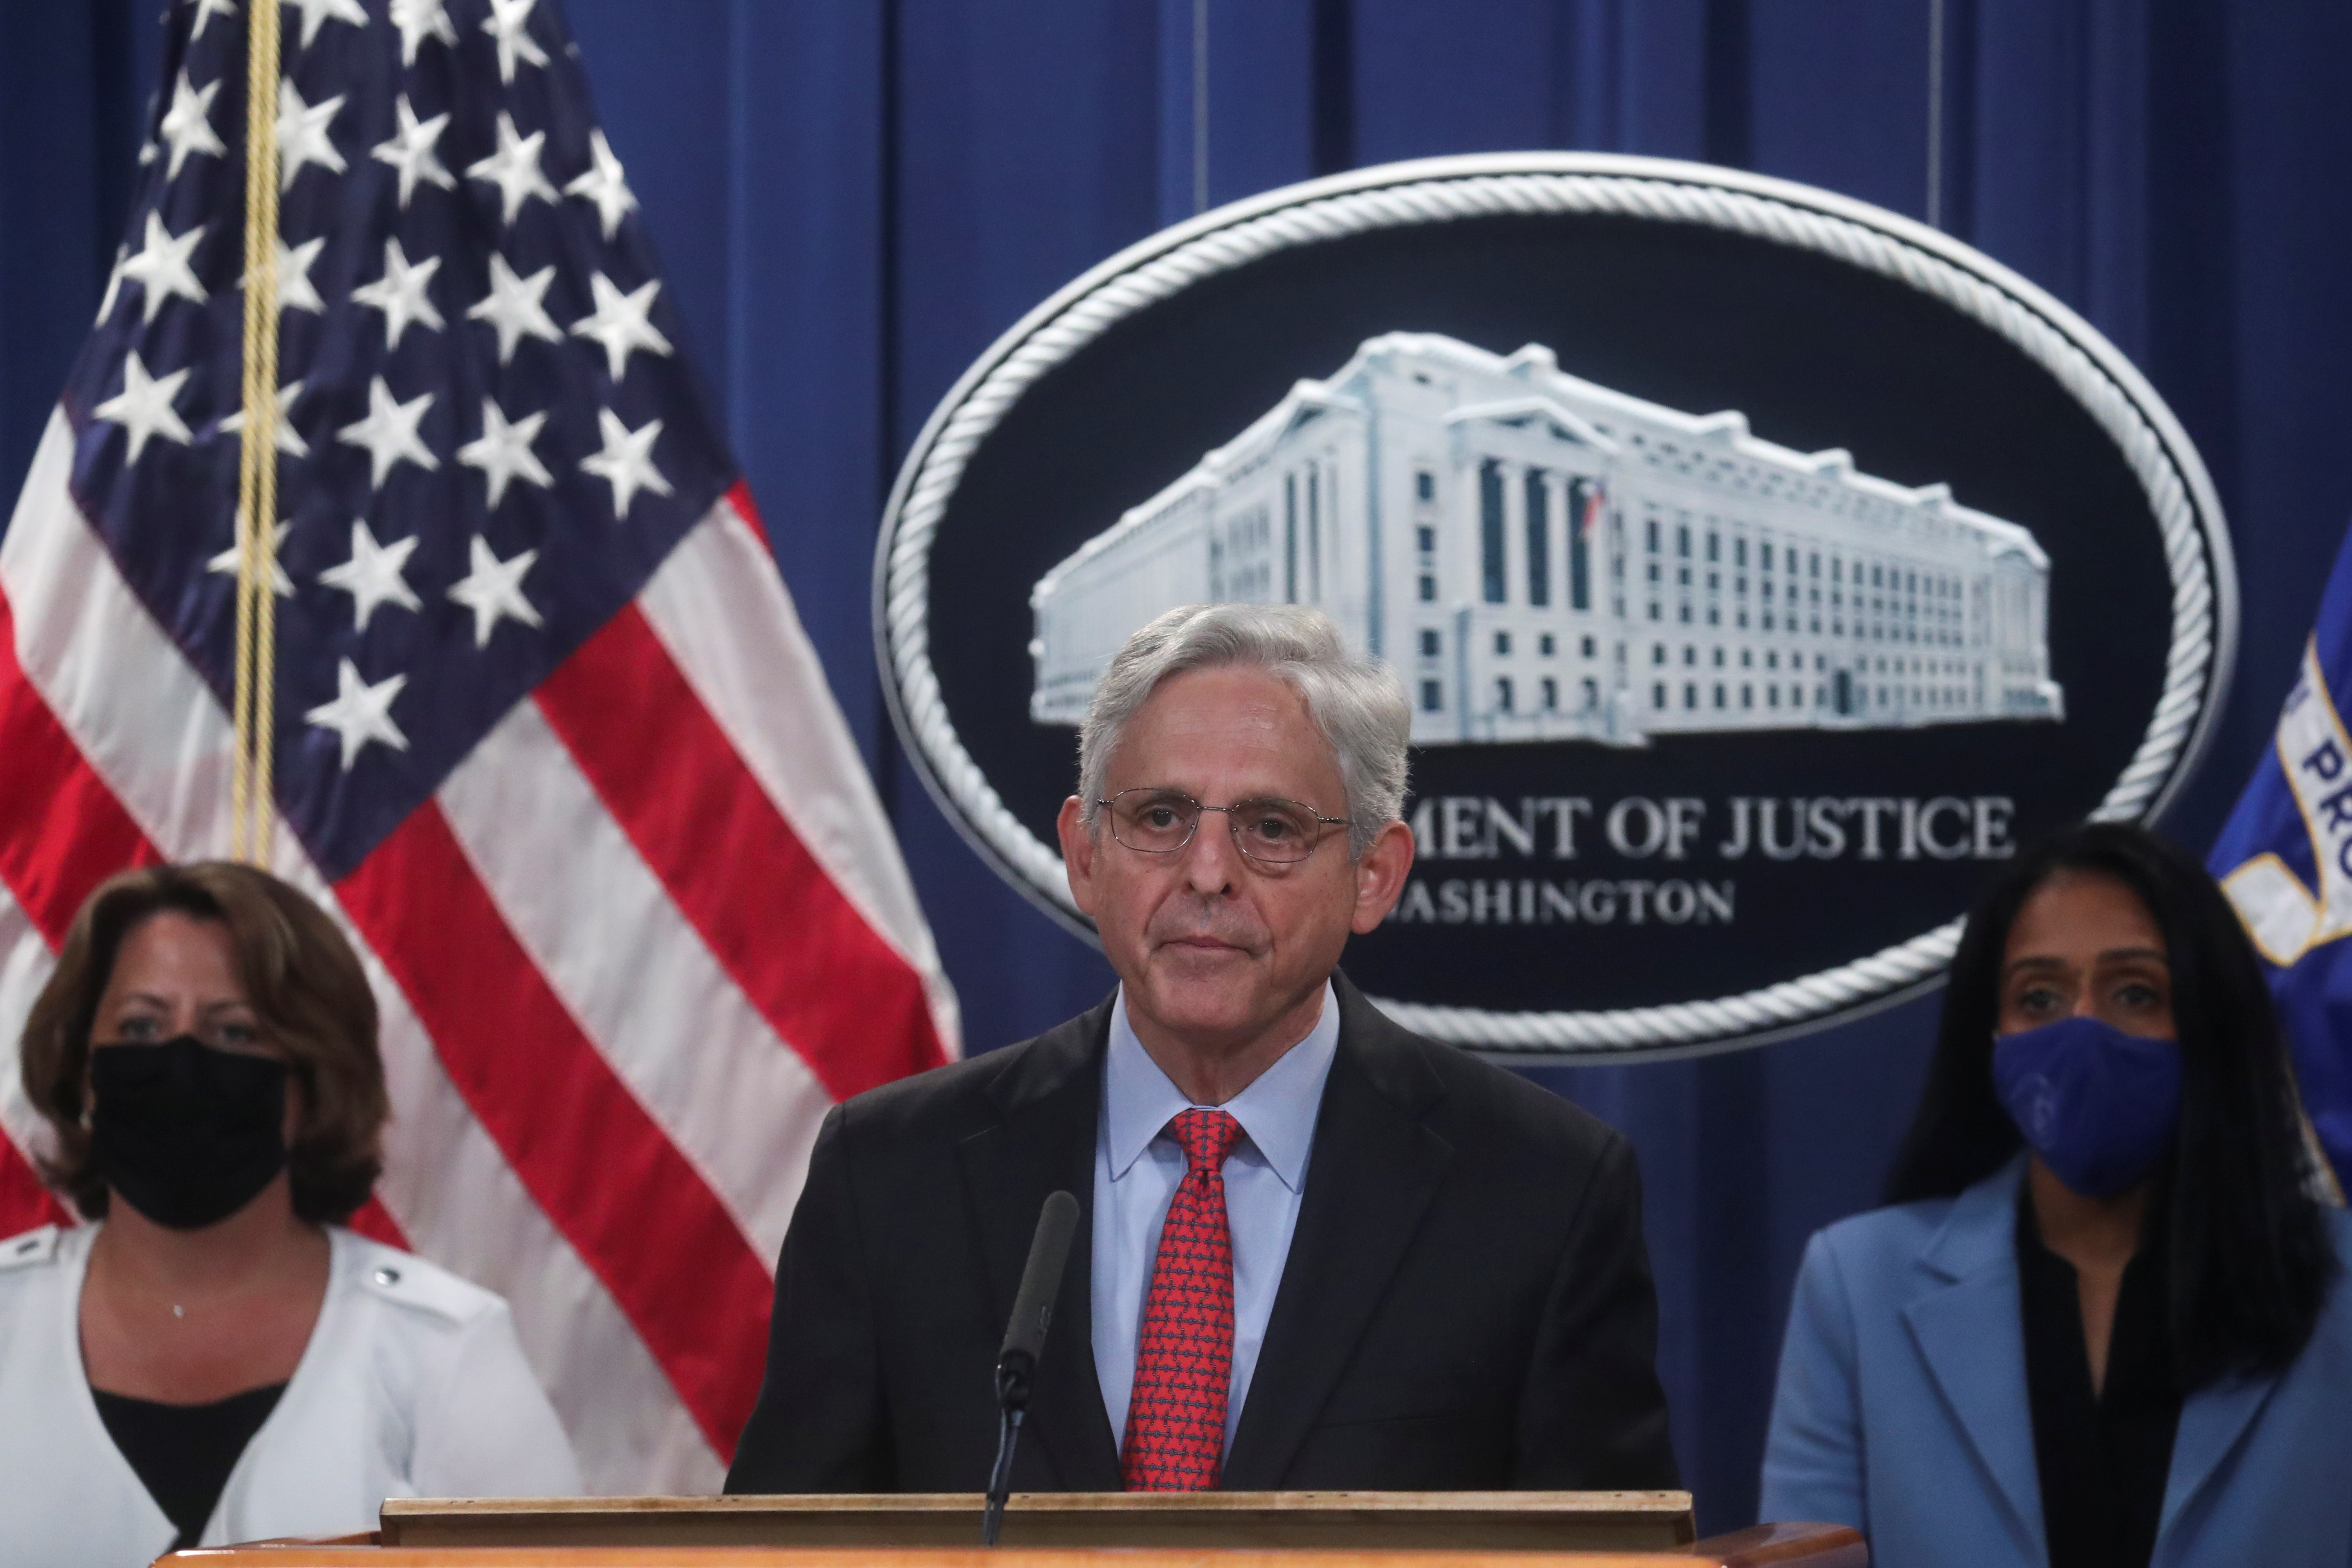 U.S. Attorney General Merrick Garland, accompanied by Deputy Attorney General Lisa Monaco and Associate Attorney General Vanita Gupta, announces a civil lawsuit to sue Texas over its abortion law, during a news conference at the Justice Department in Washington, D.C., U.S., September 9, 2021. REUTERS/Leah Millis